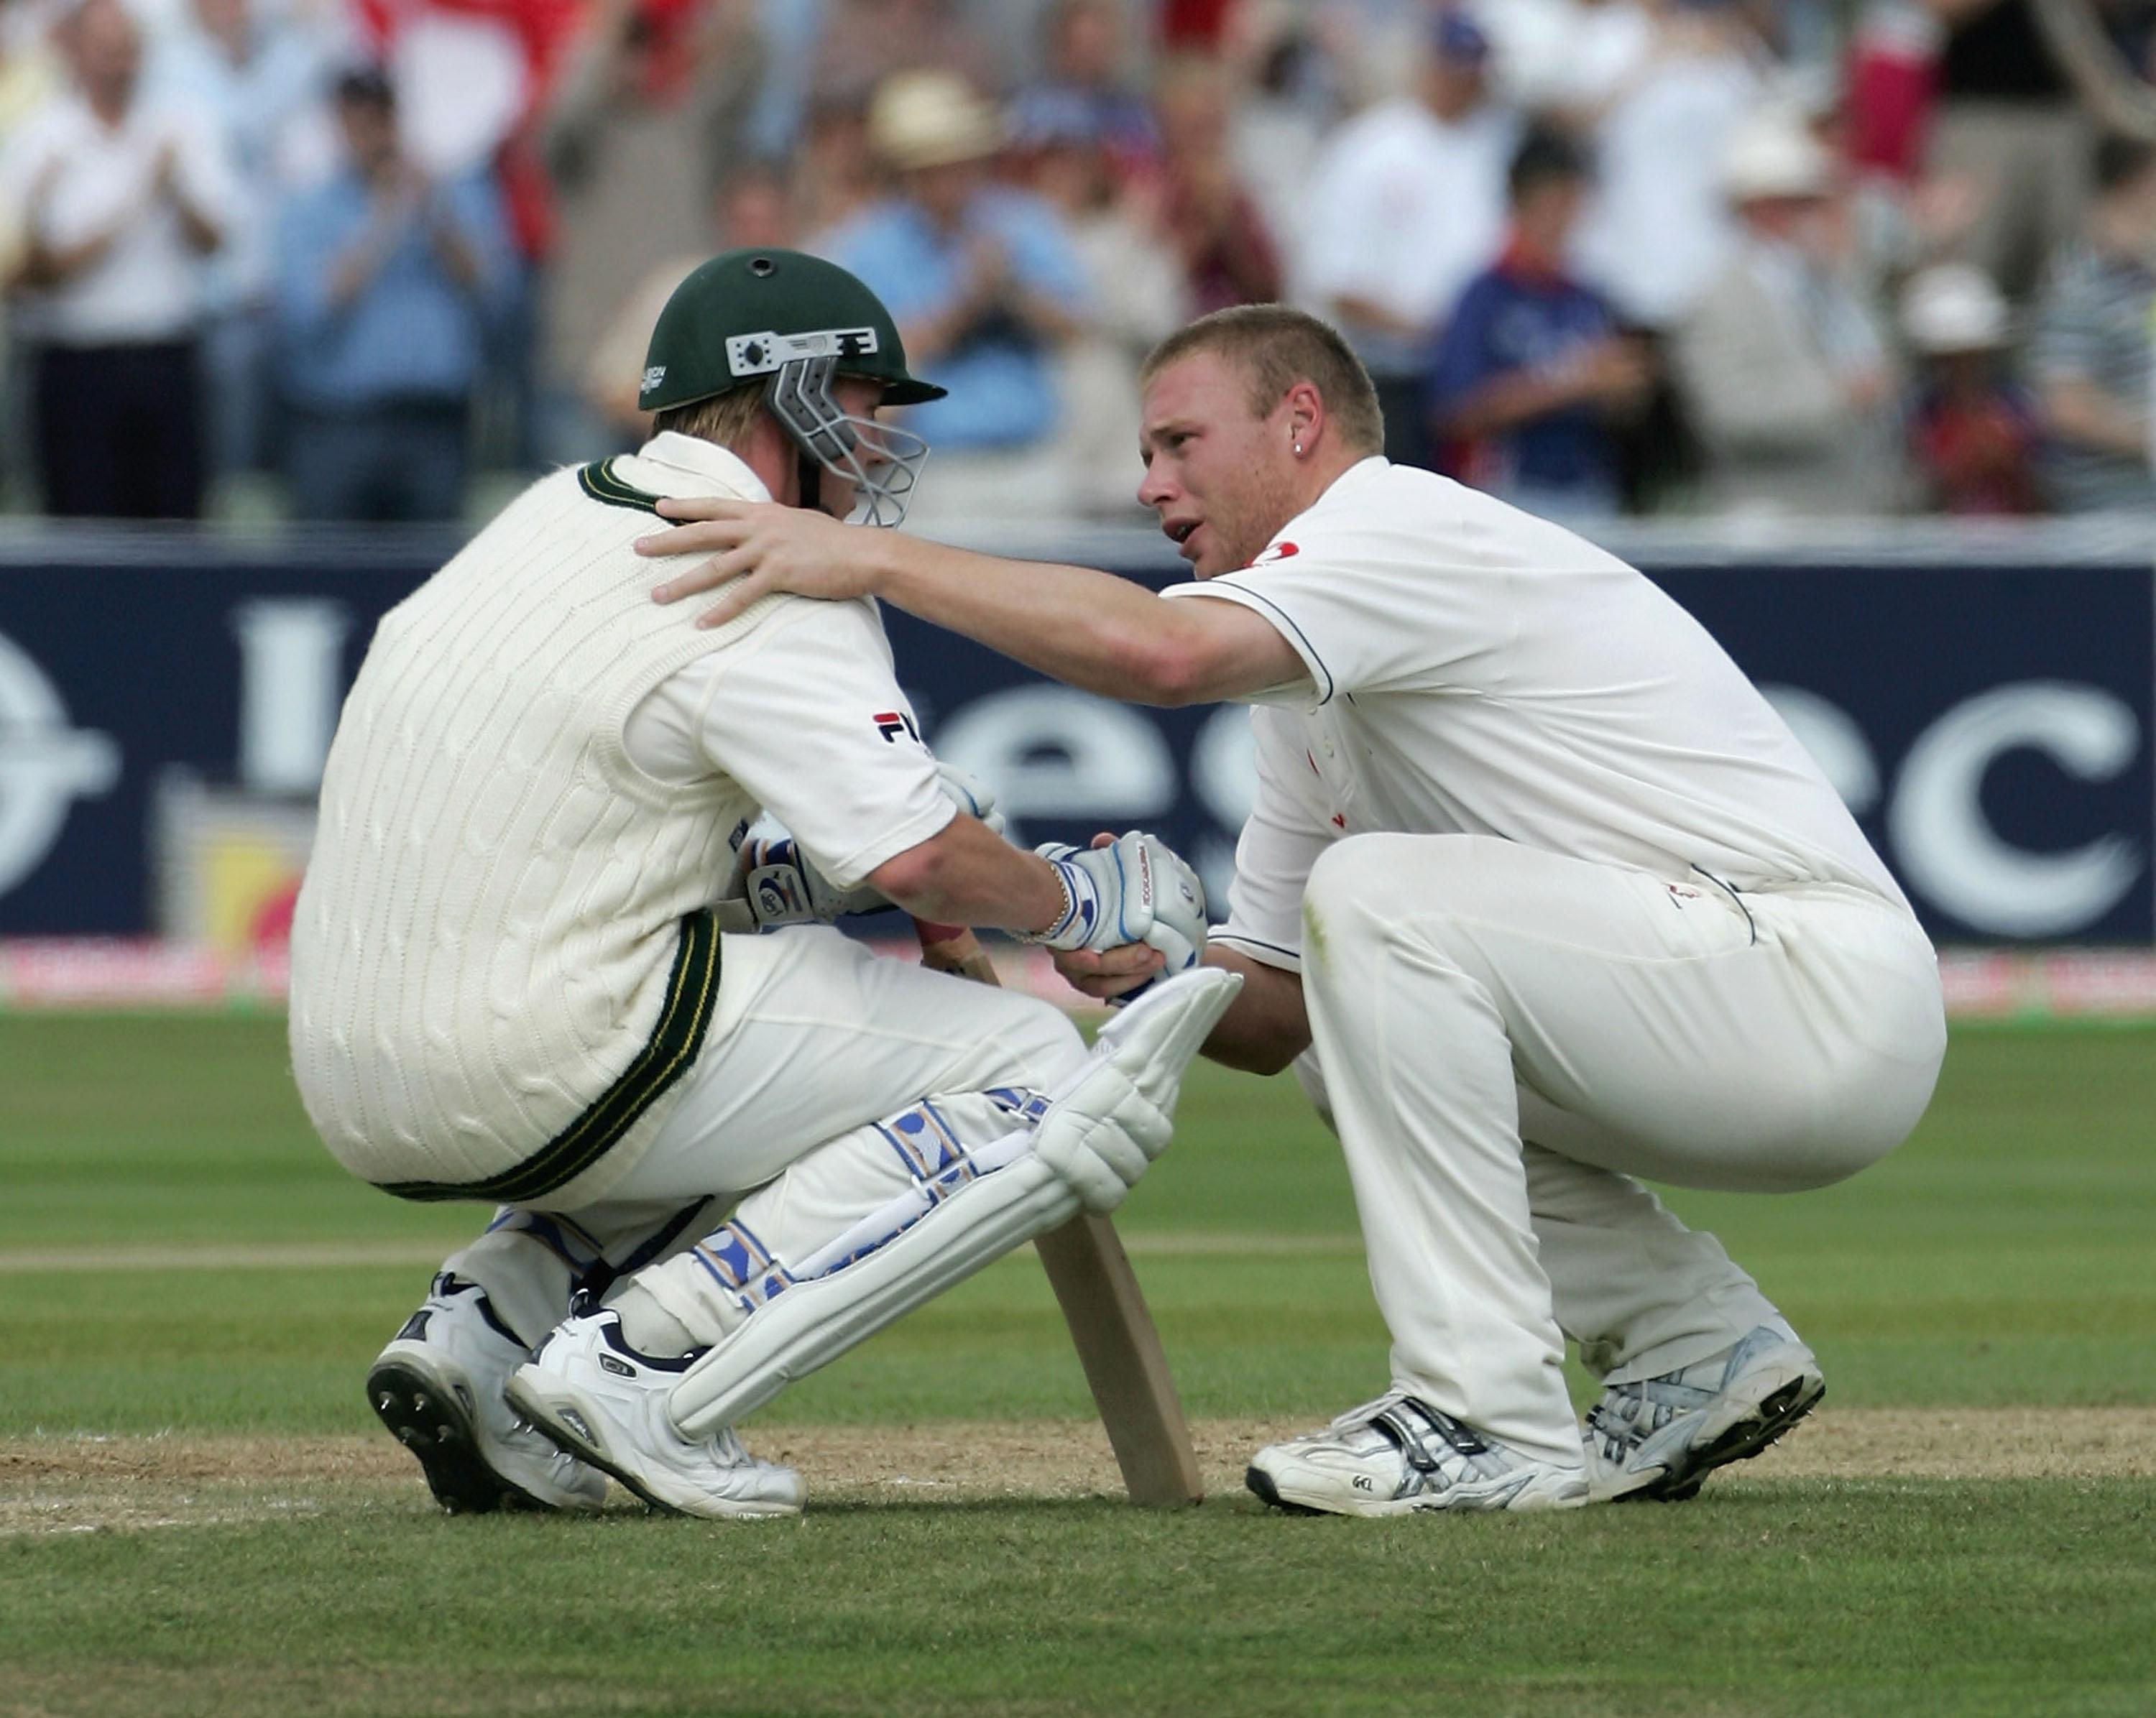 Andrew Flintoff commiserates with Brett Lee after England's 2005 Test win